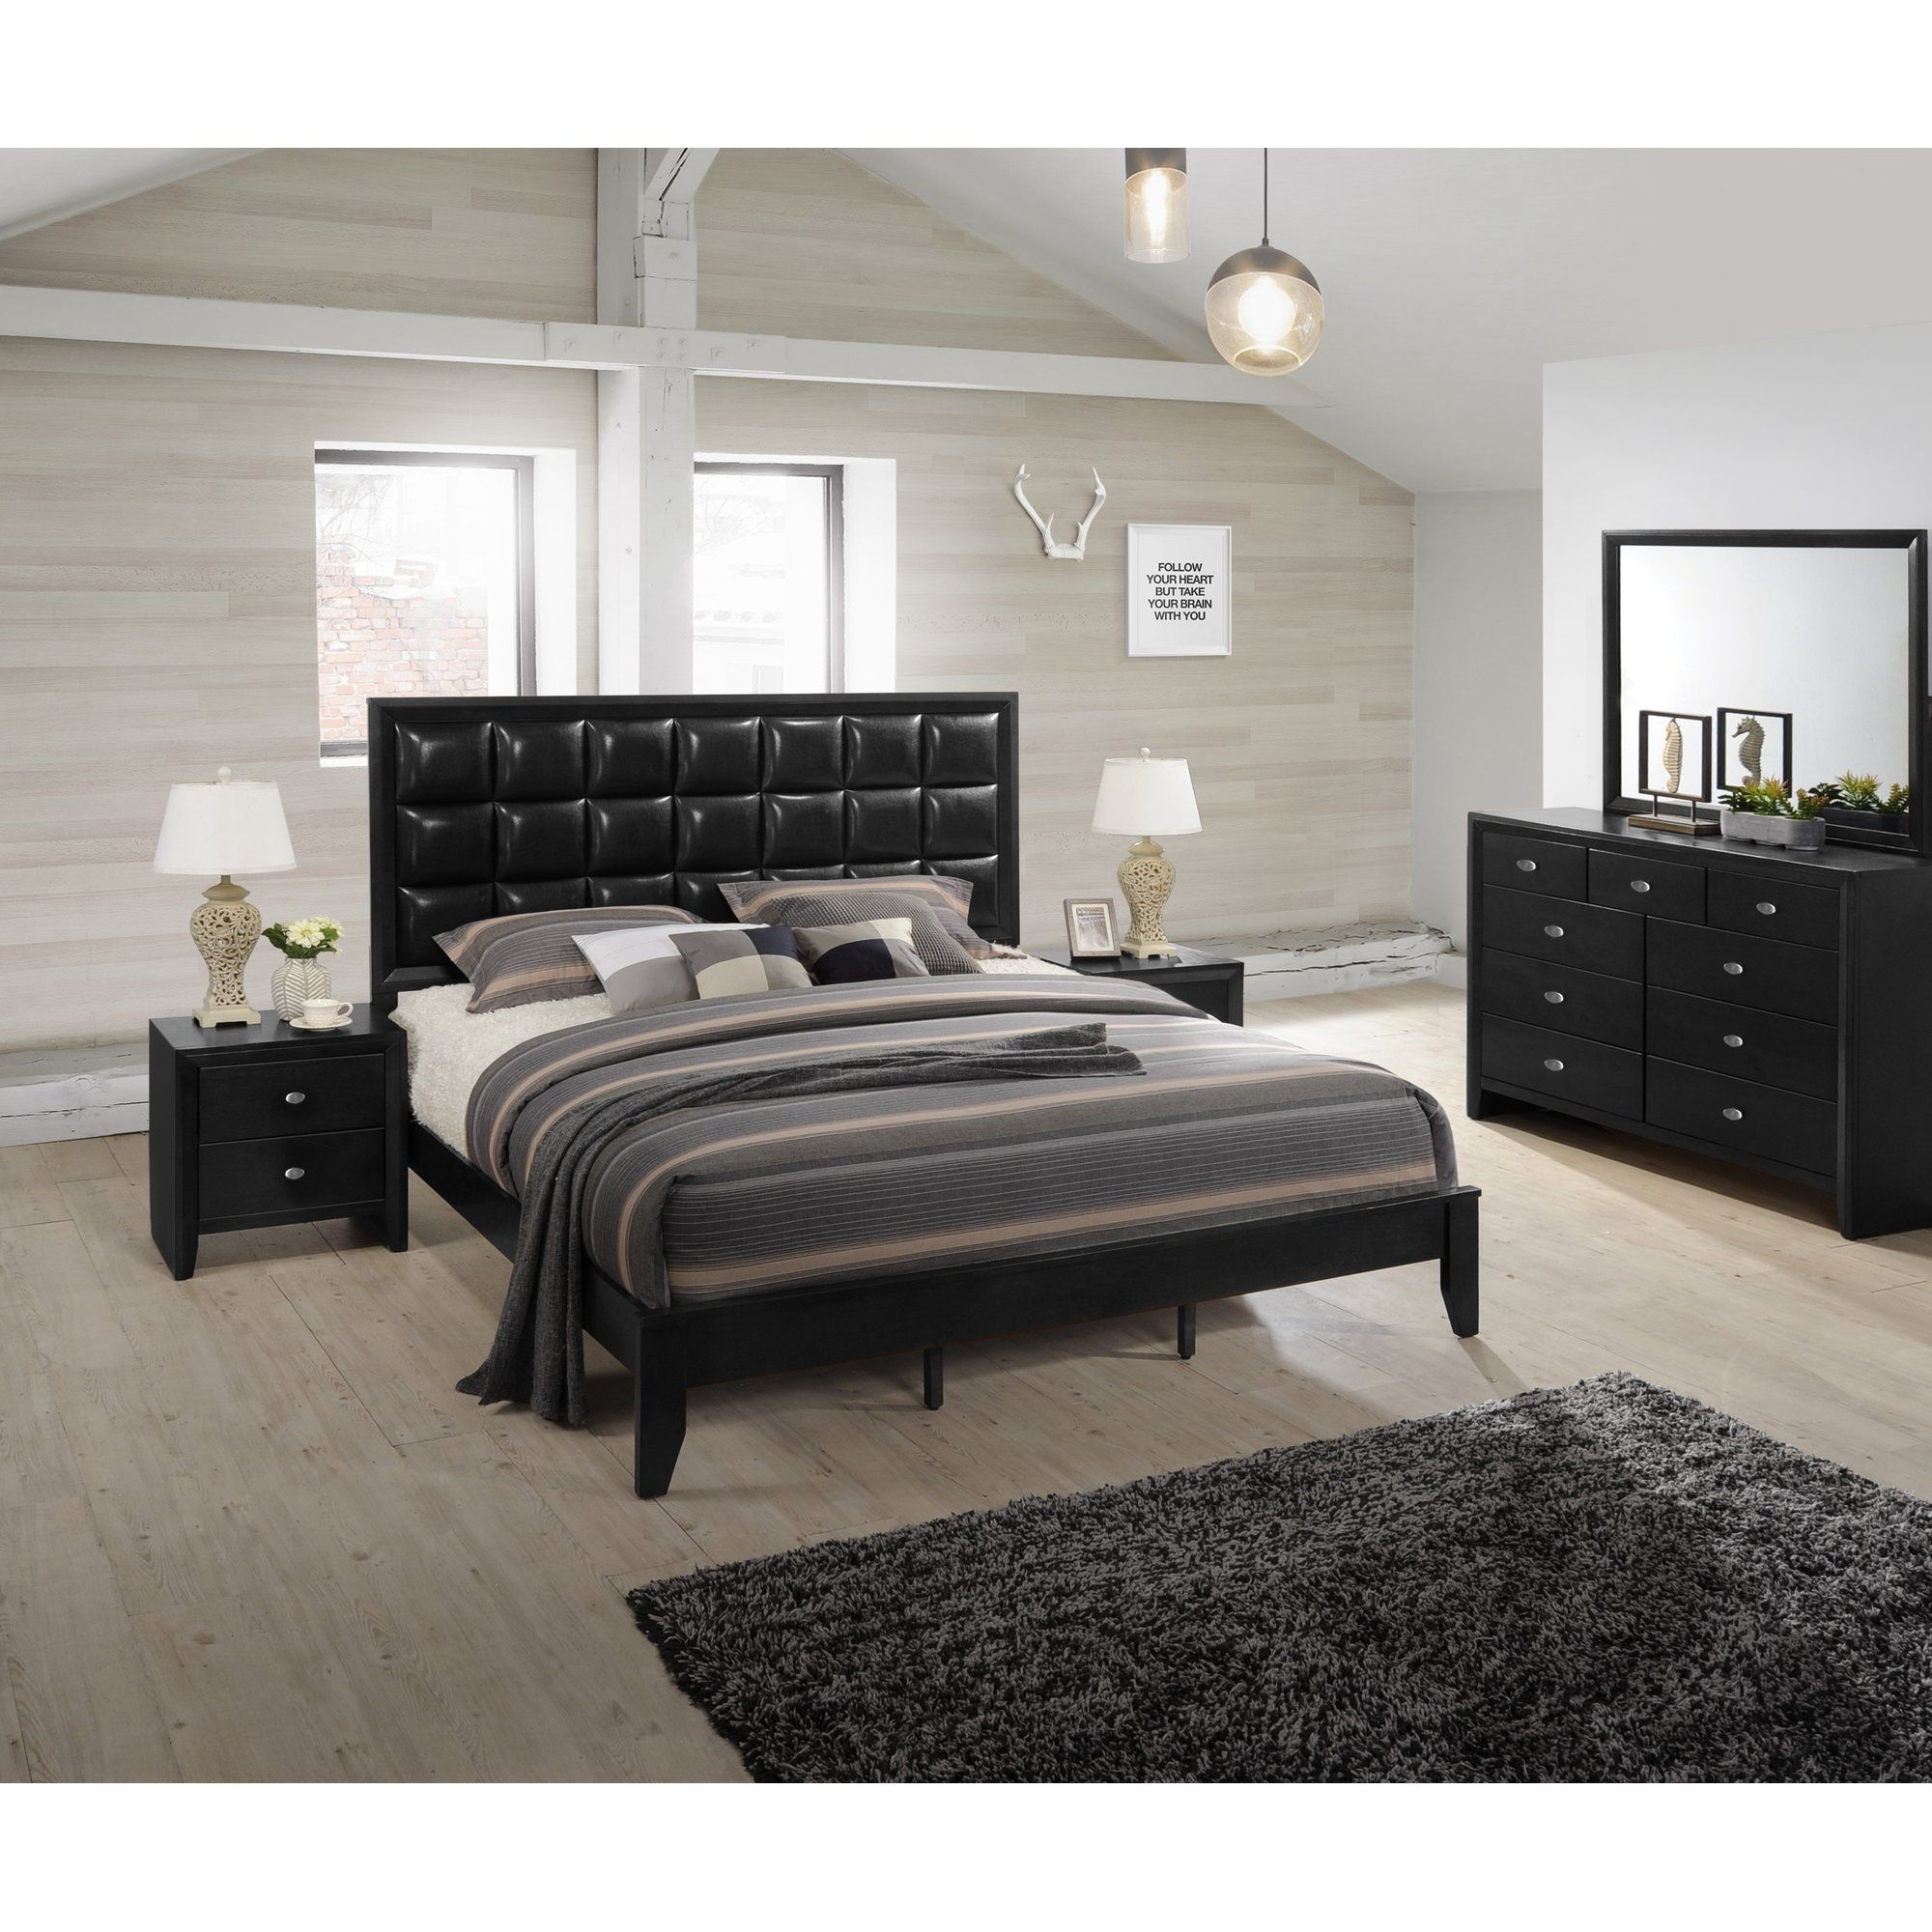 48 Bedroom Sets Queen Under 500 Best